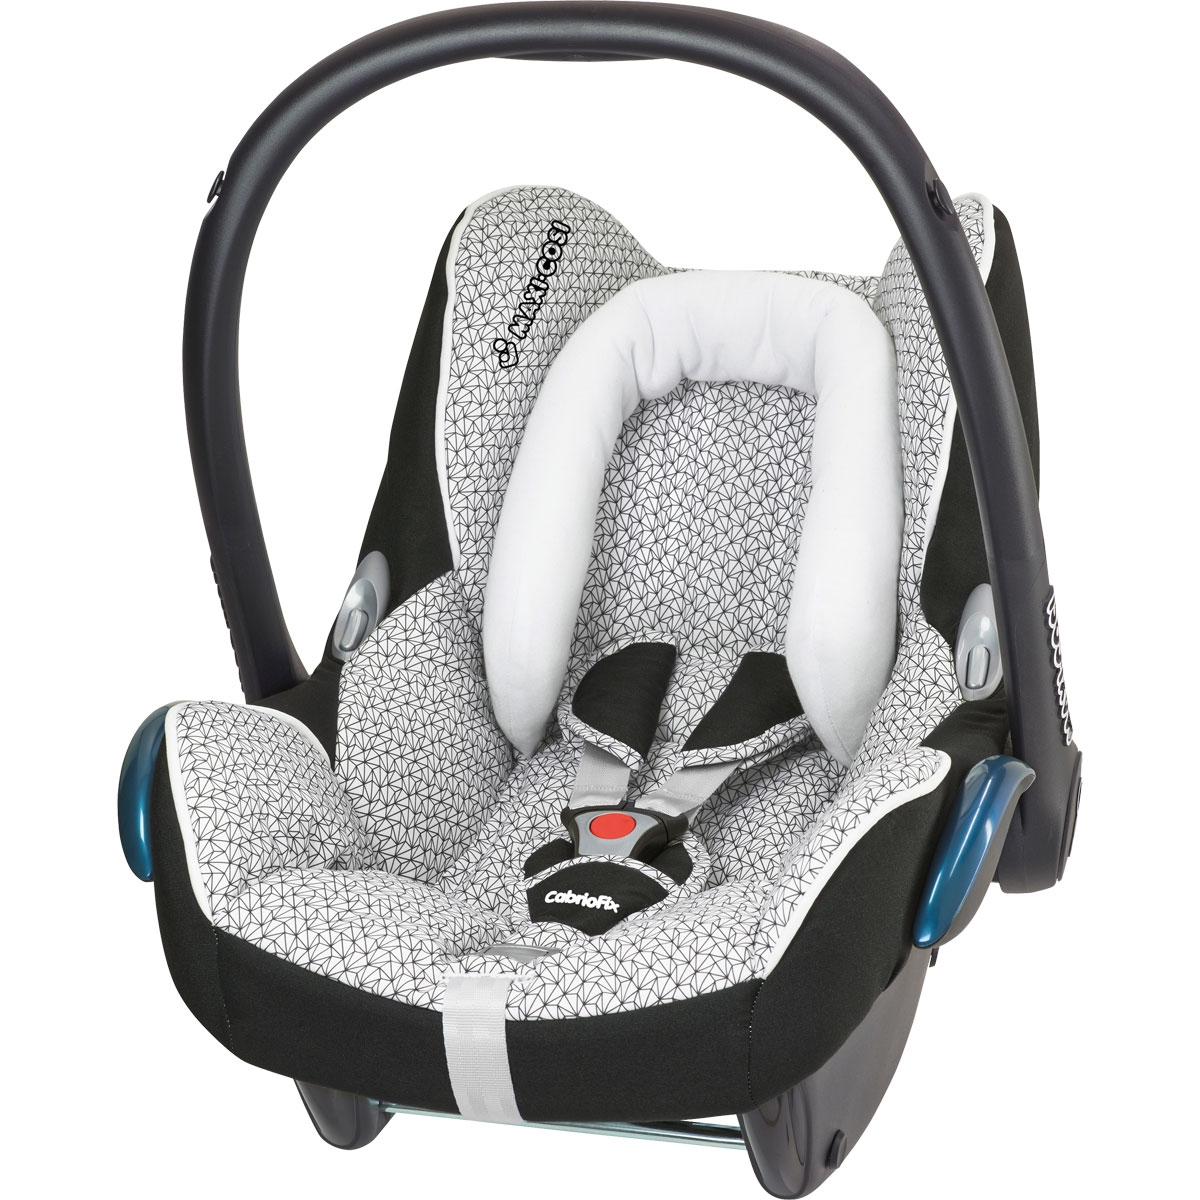 maxi cosi babyschale cabrio cabriofix kollektion 2014 design w hlbar ebay. Black Bedroom Furniture Sets. Home Design Ideas